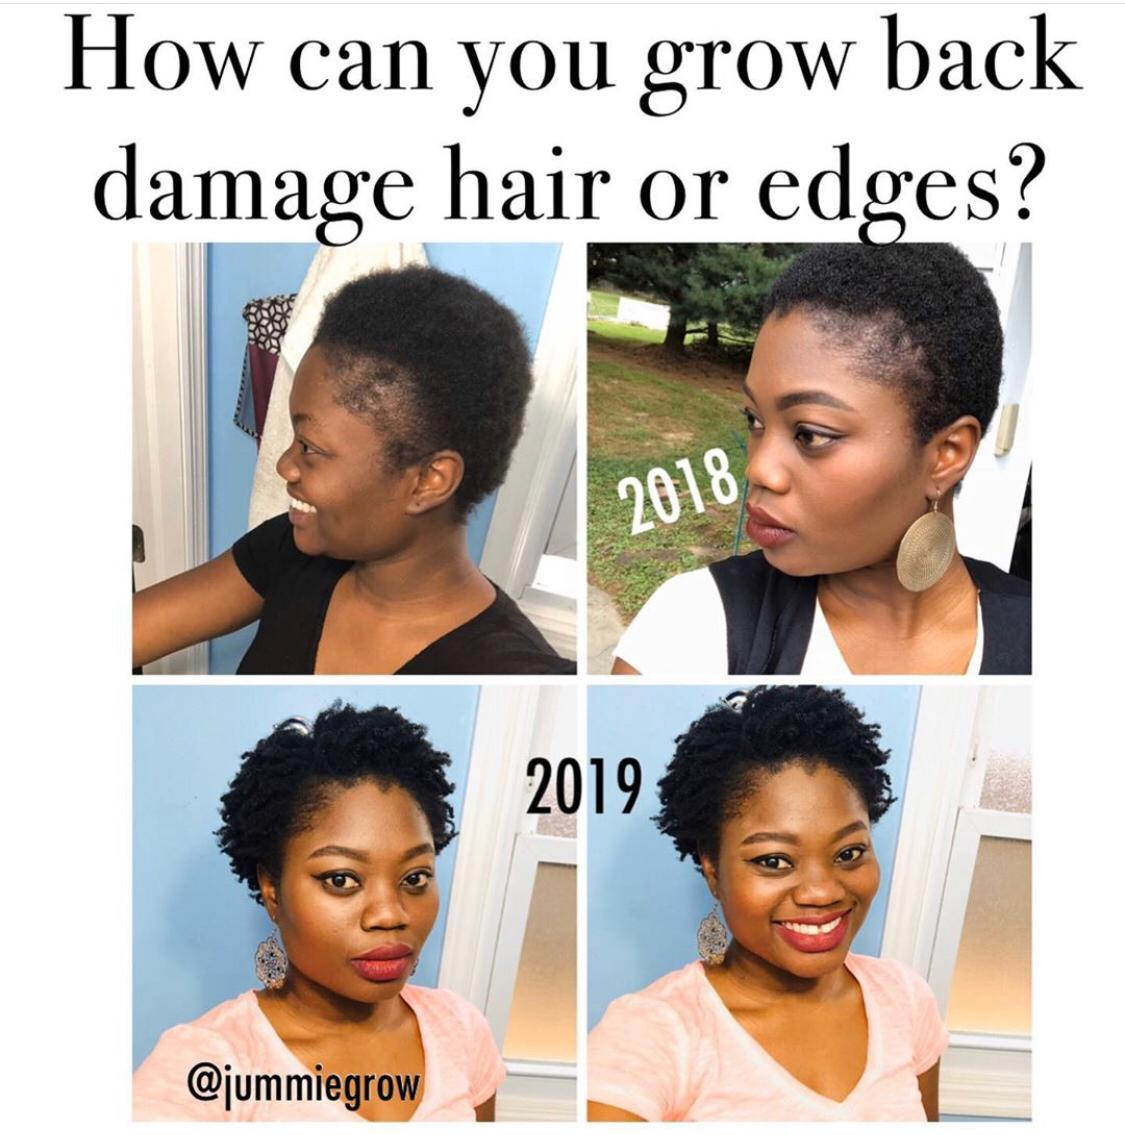 How GlammedNaturallyOil CEO JUMMIE grew back her edges